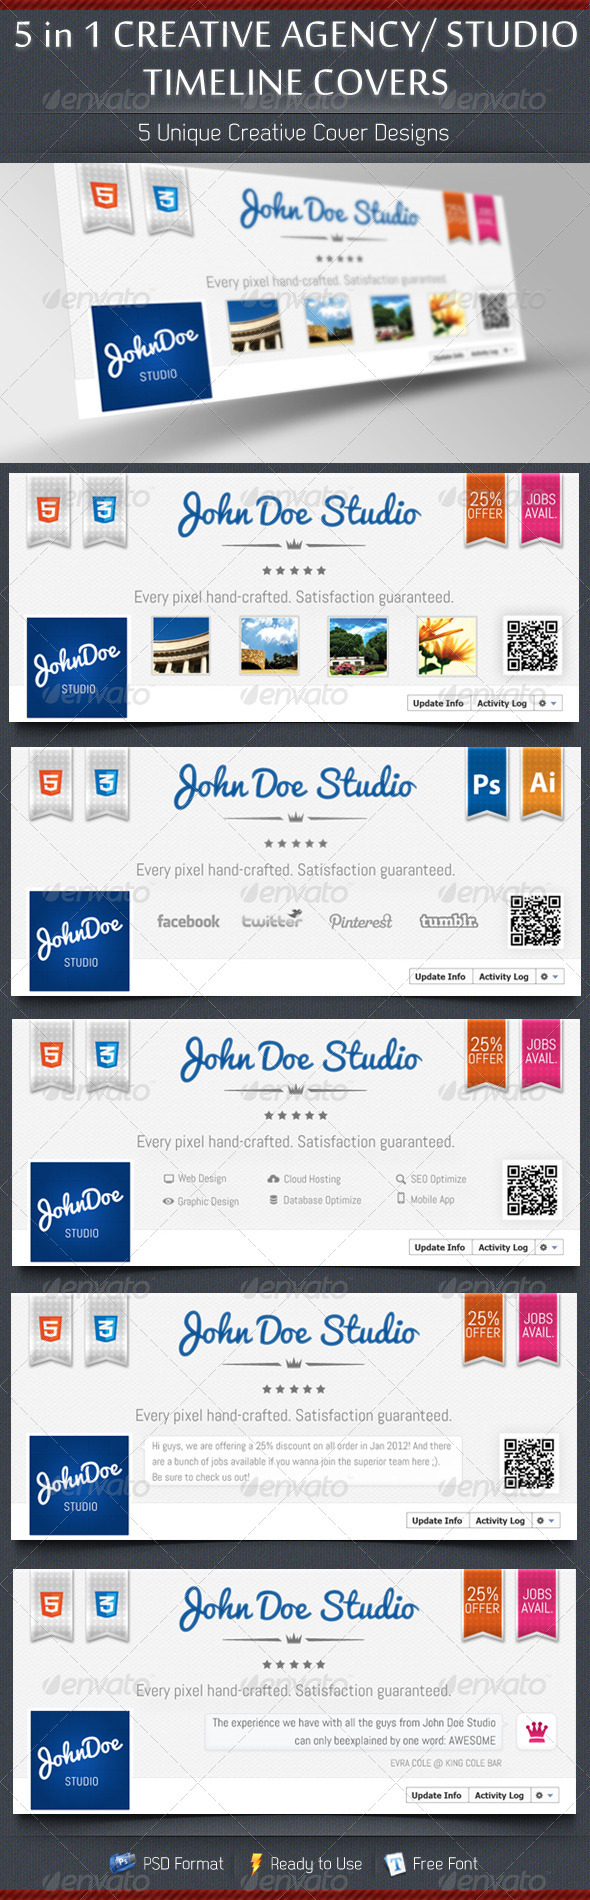 GraphicRiver 5 in 1 Creative Studio Agency Timeline Covers 3769129